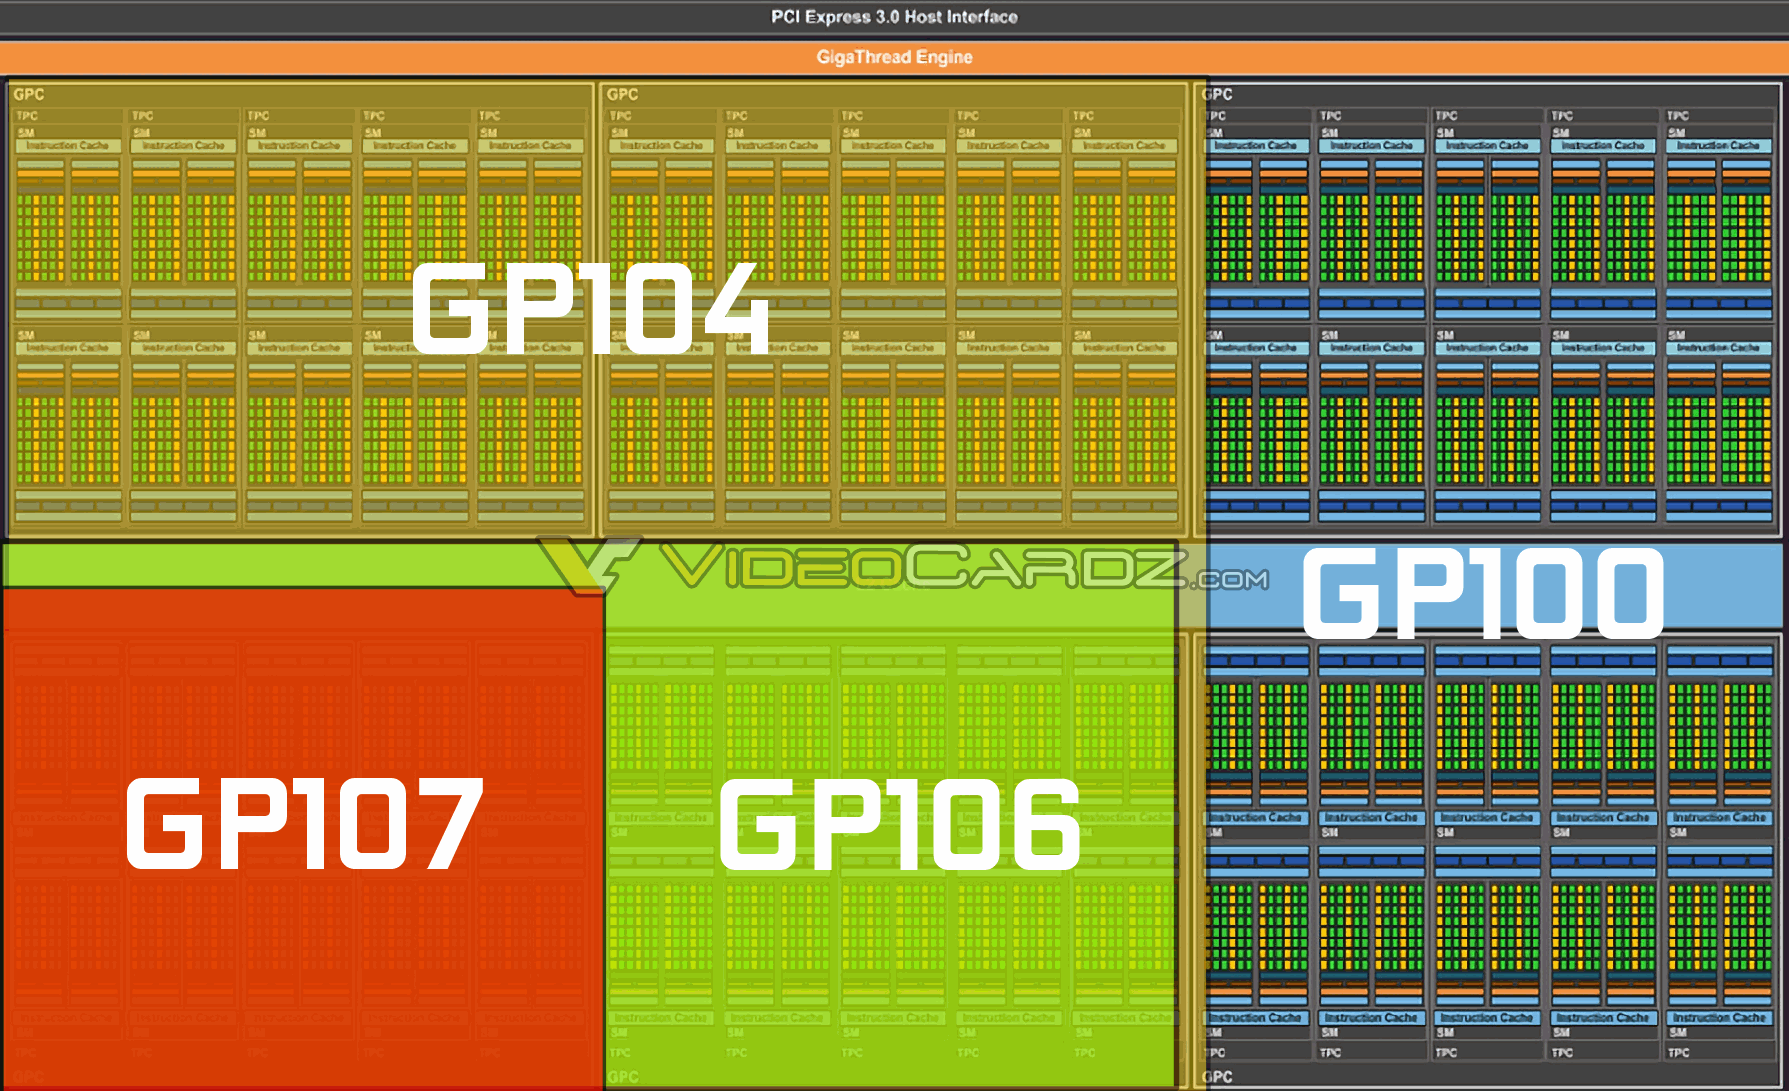 chiphell first look at gp104 die and unknown pascal gpu